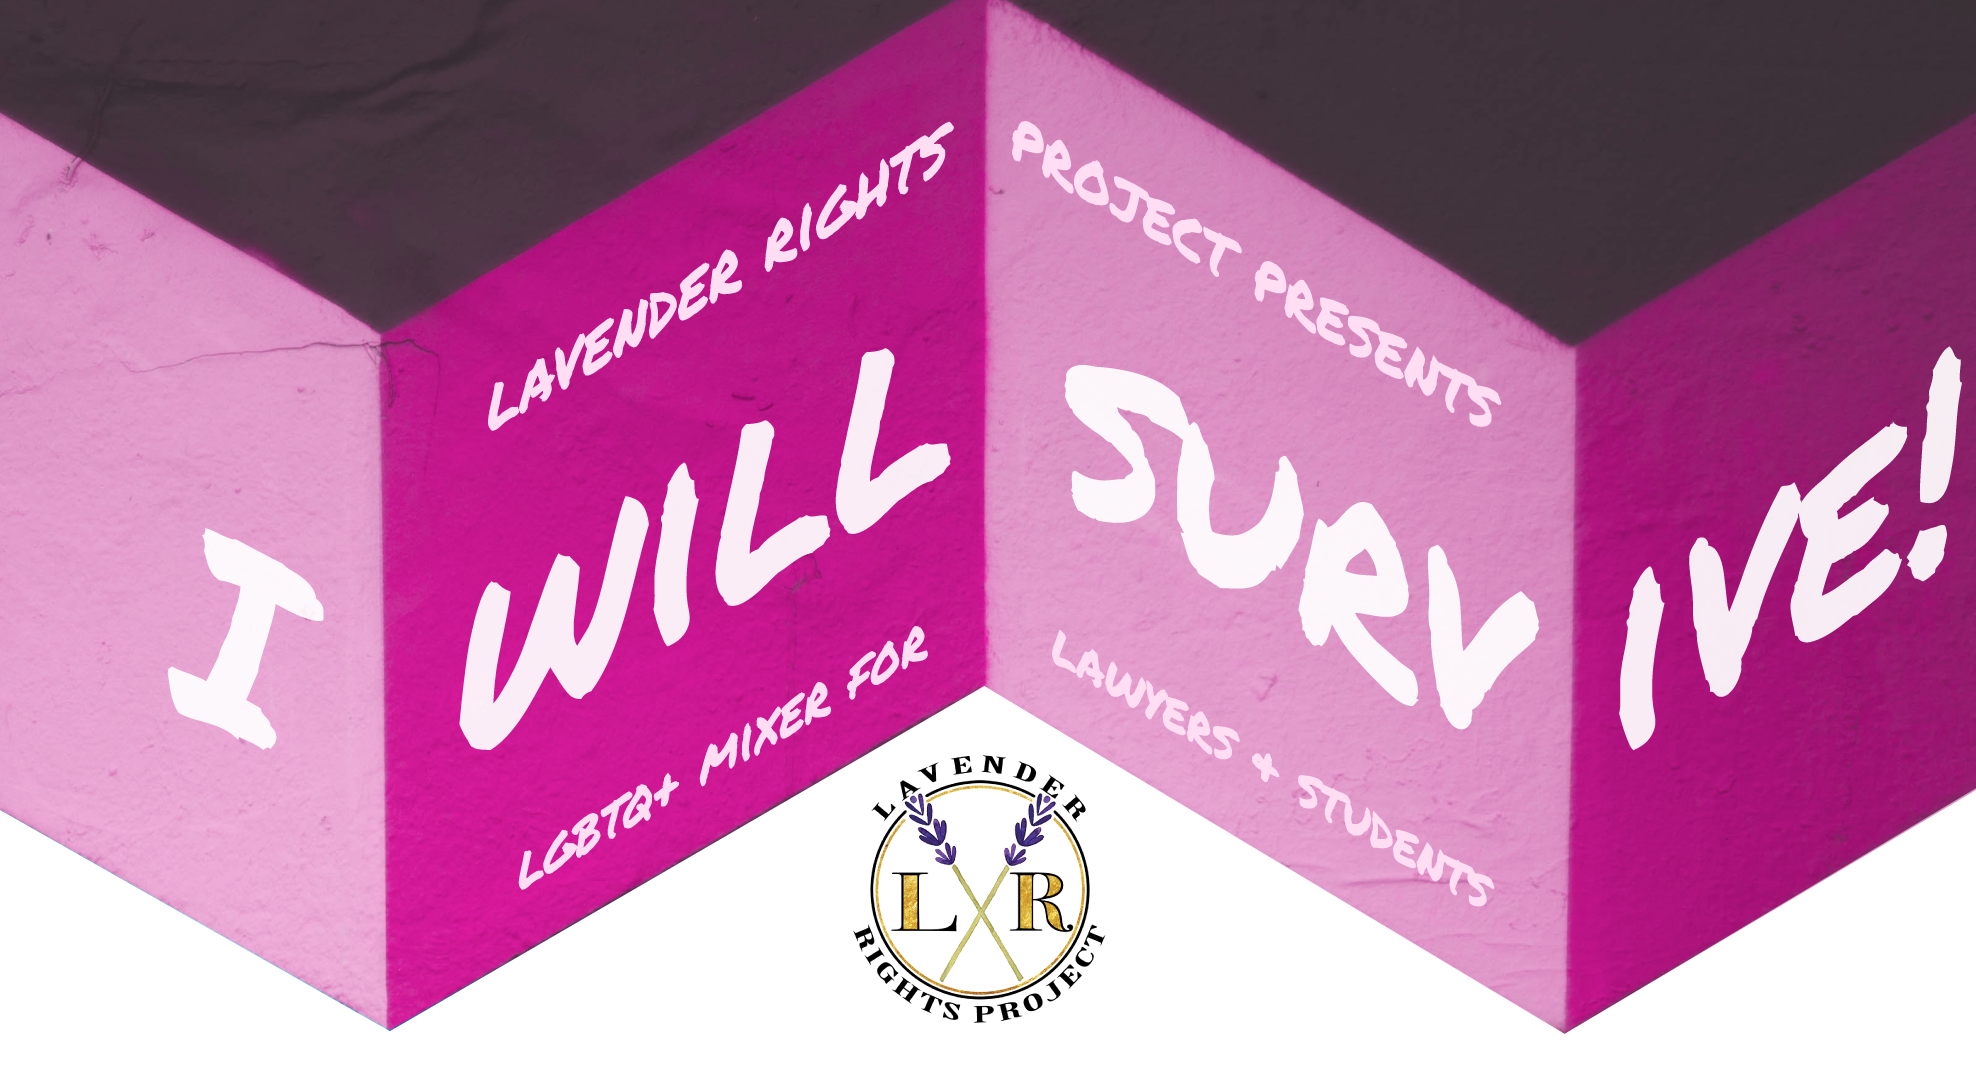 "Image description: Pink 3D boxes with text that wraps around each edge, reading, ""Lavender Rights Project Presents, I Will Survive: LGBTQ+ Mixer for Lawyers & Students,"" Lavender Rights Project logo beneath"